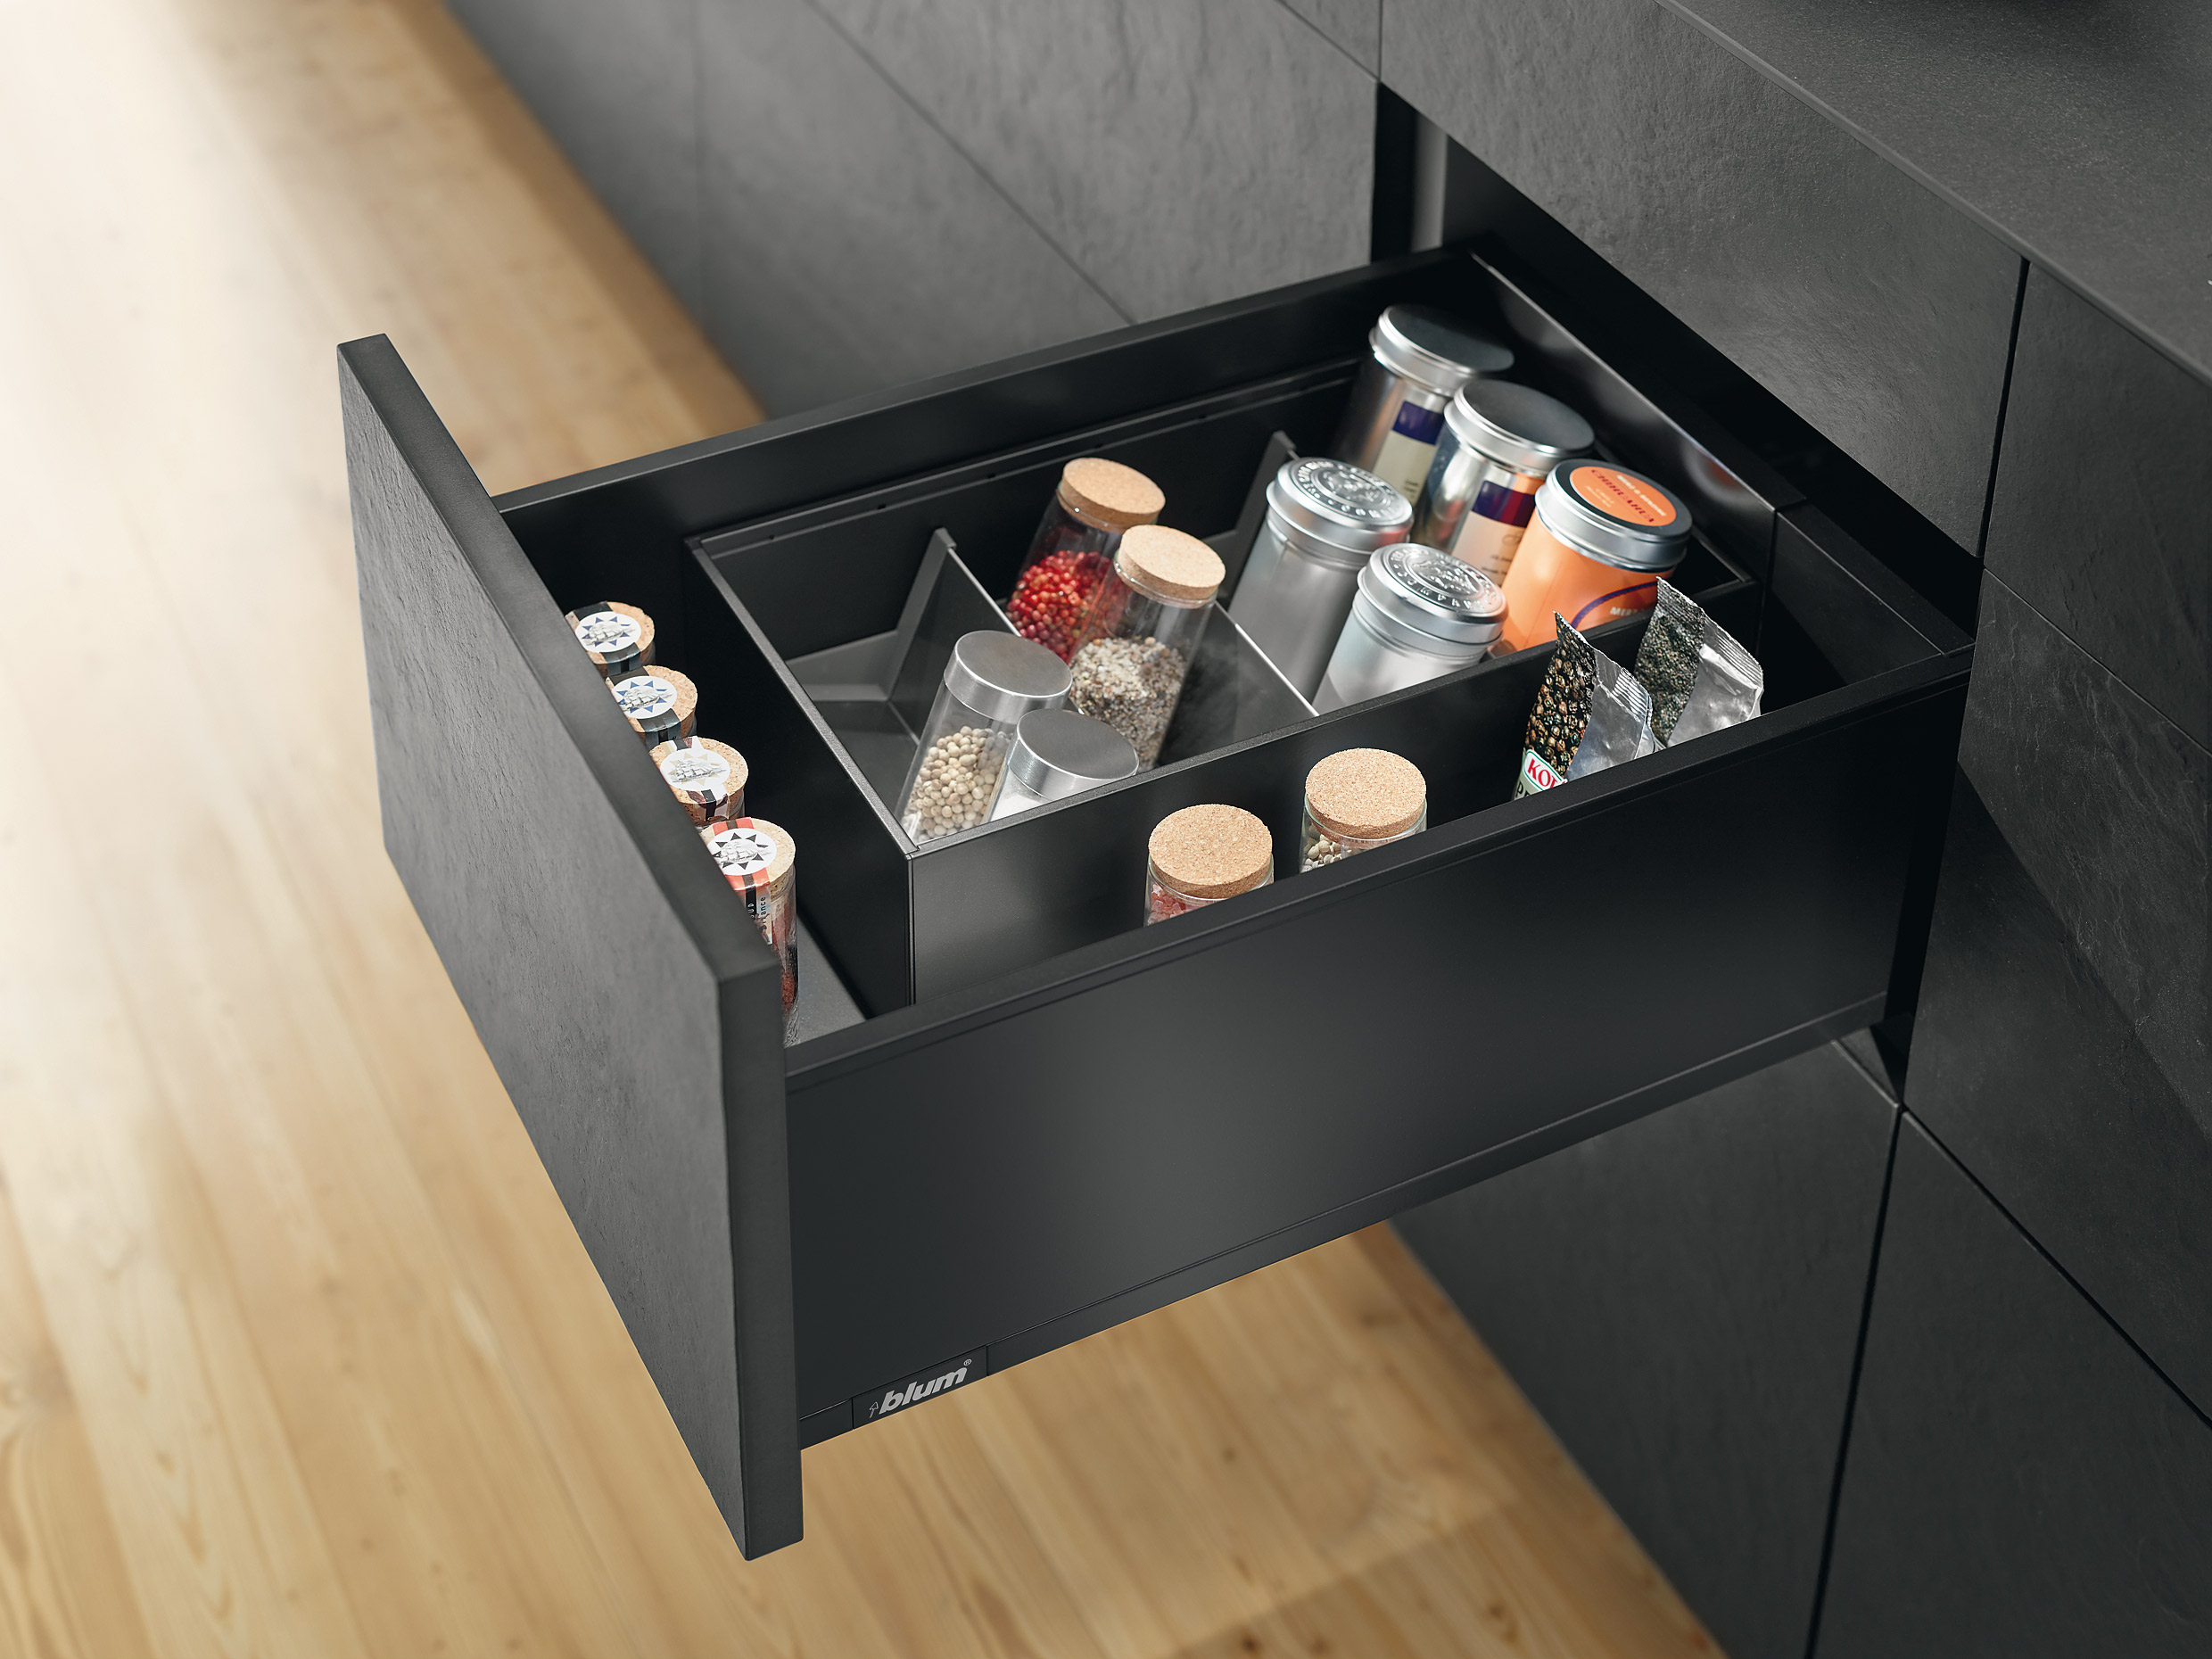 Perfect de keukenlade indelen met Legrabox van Blum